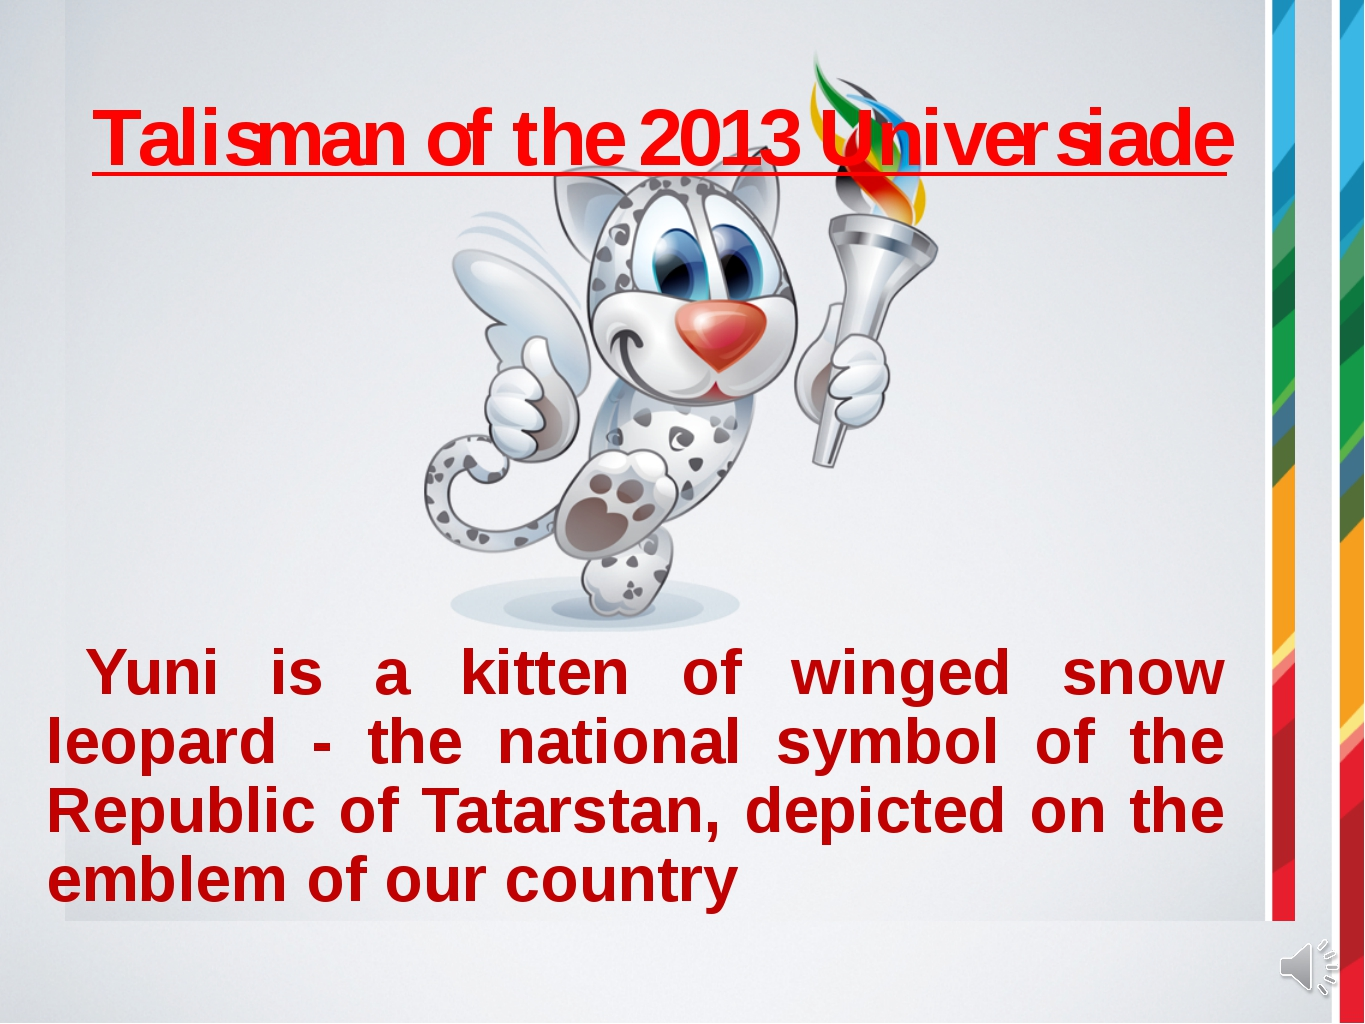 Talisman of the 2013 Universiade 		Yuni is a kitten of winged snow leopard -...